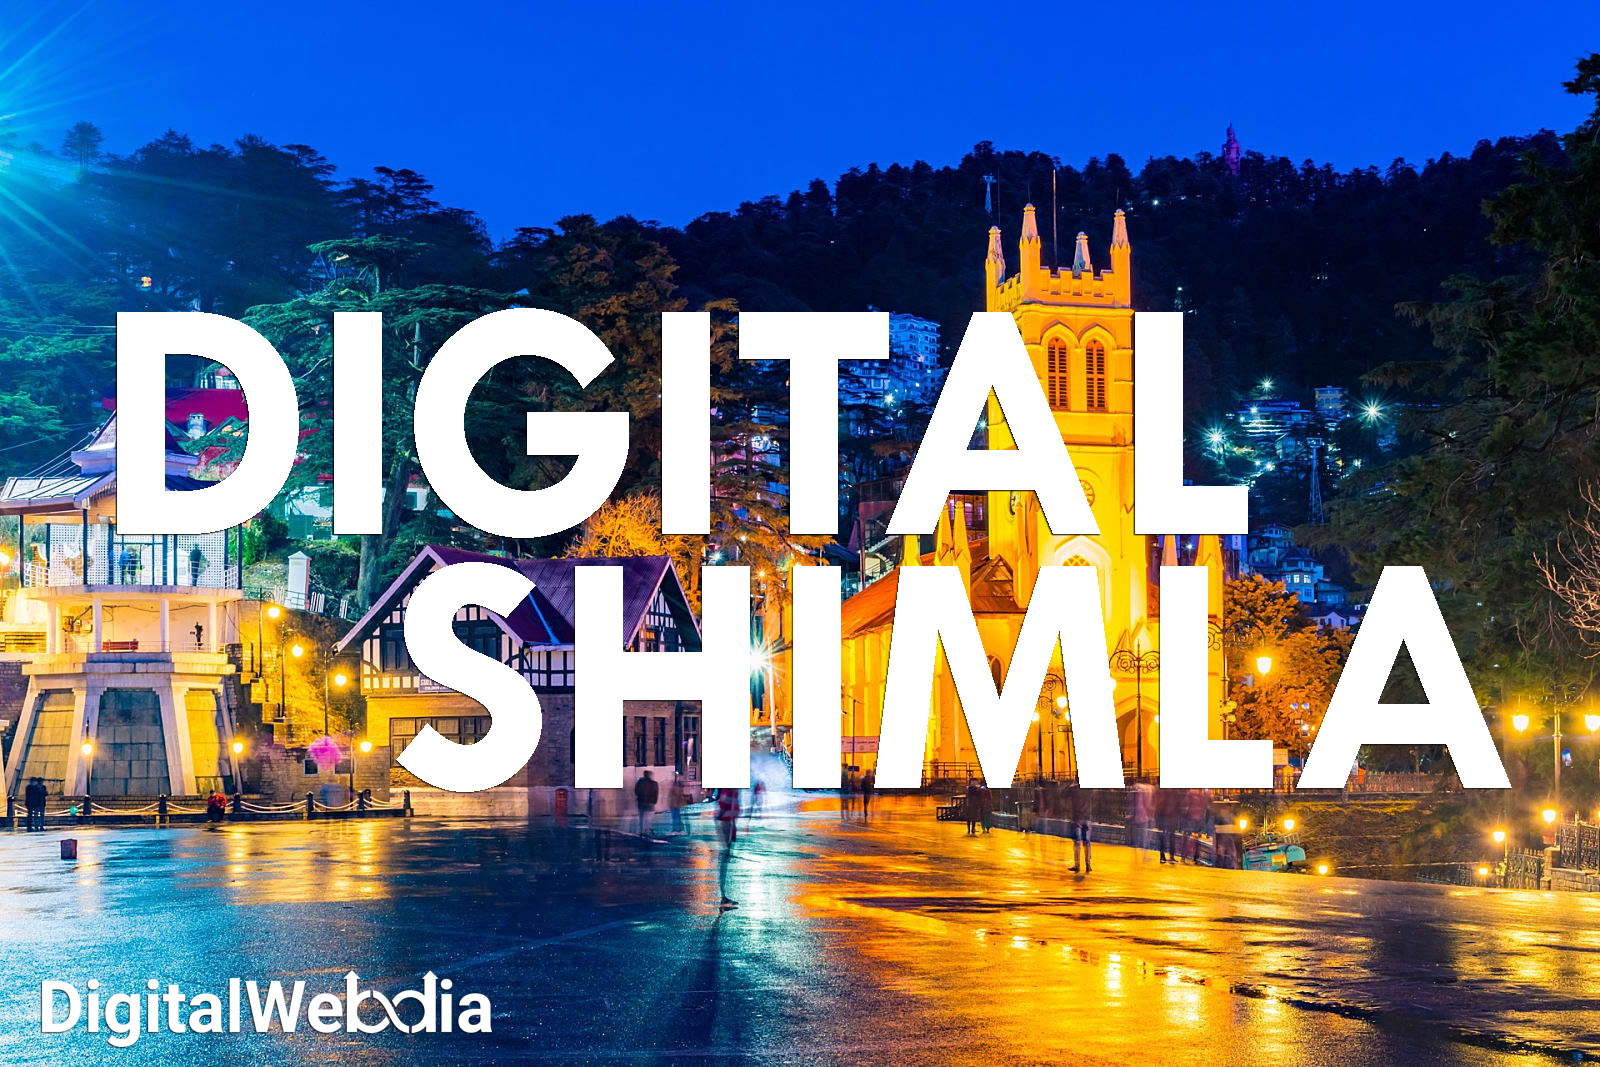 No.1 Digital Marketing Agency in Shimla (Himachal Pradesh)